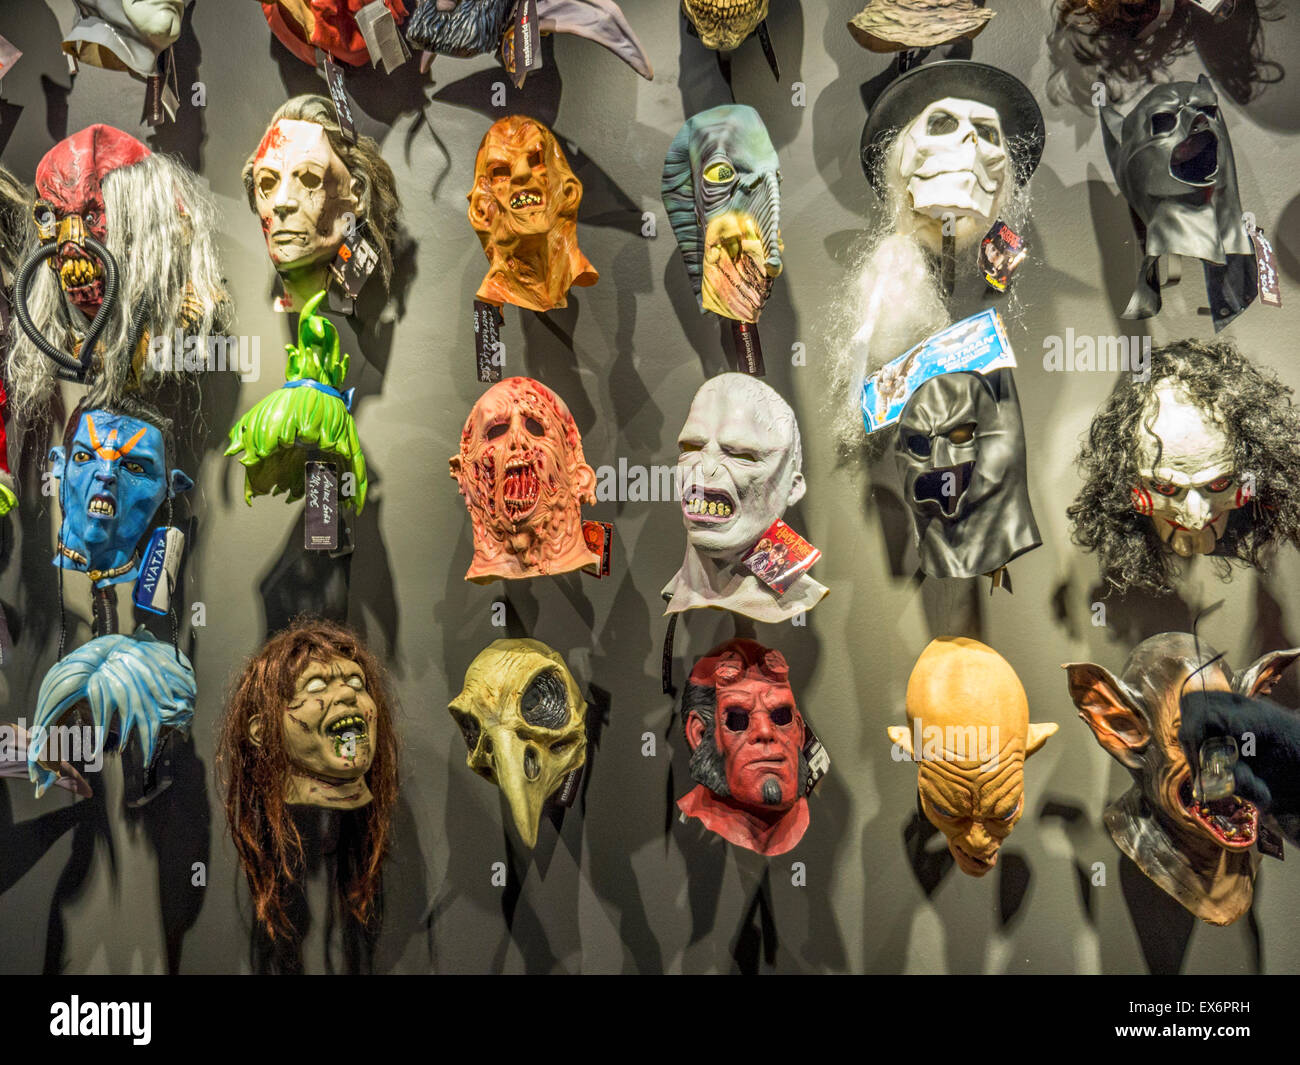 berlin maskworld mask wall in store selling masks fancy dress outfits masquerade costumes and theatrical accessories